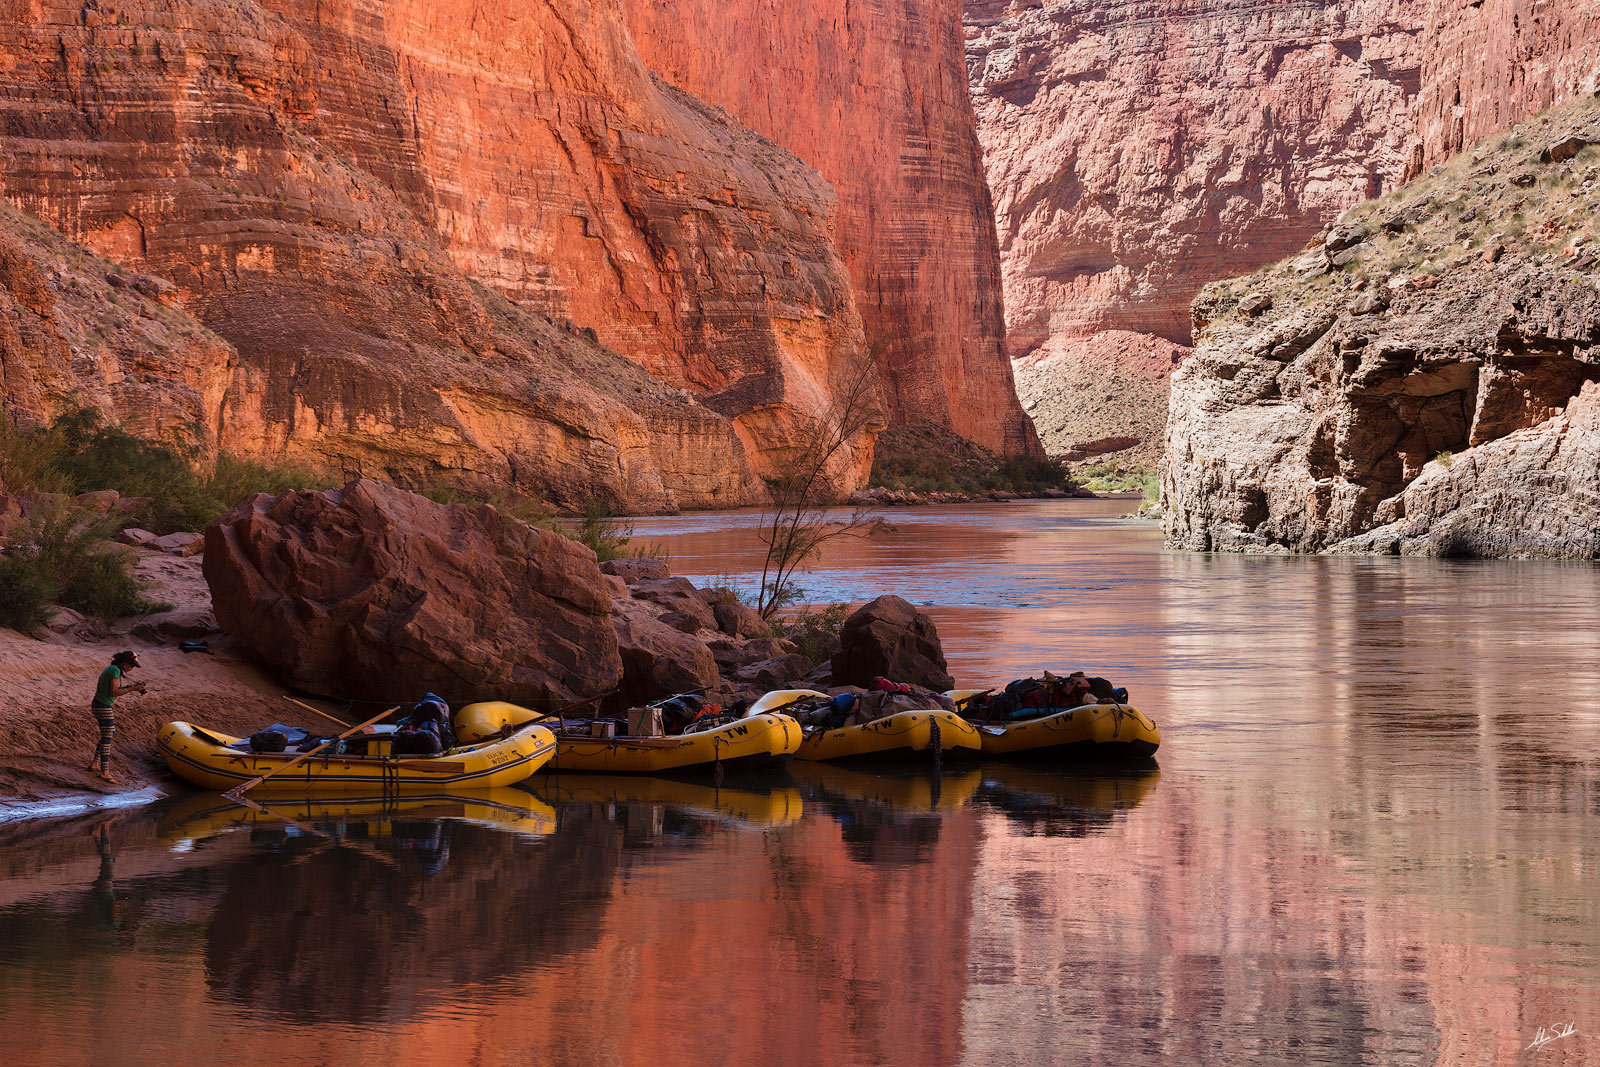 Rafts are tied-up at Redwall Cavern. Photo © Adam Schallau, All Rights Reserved.